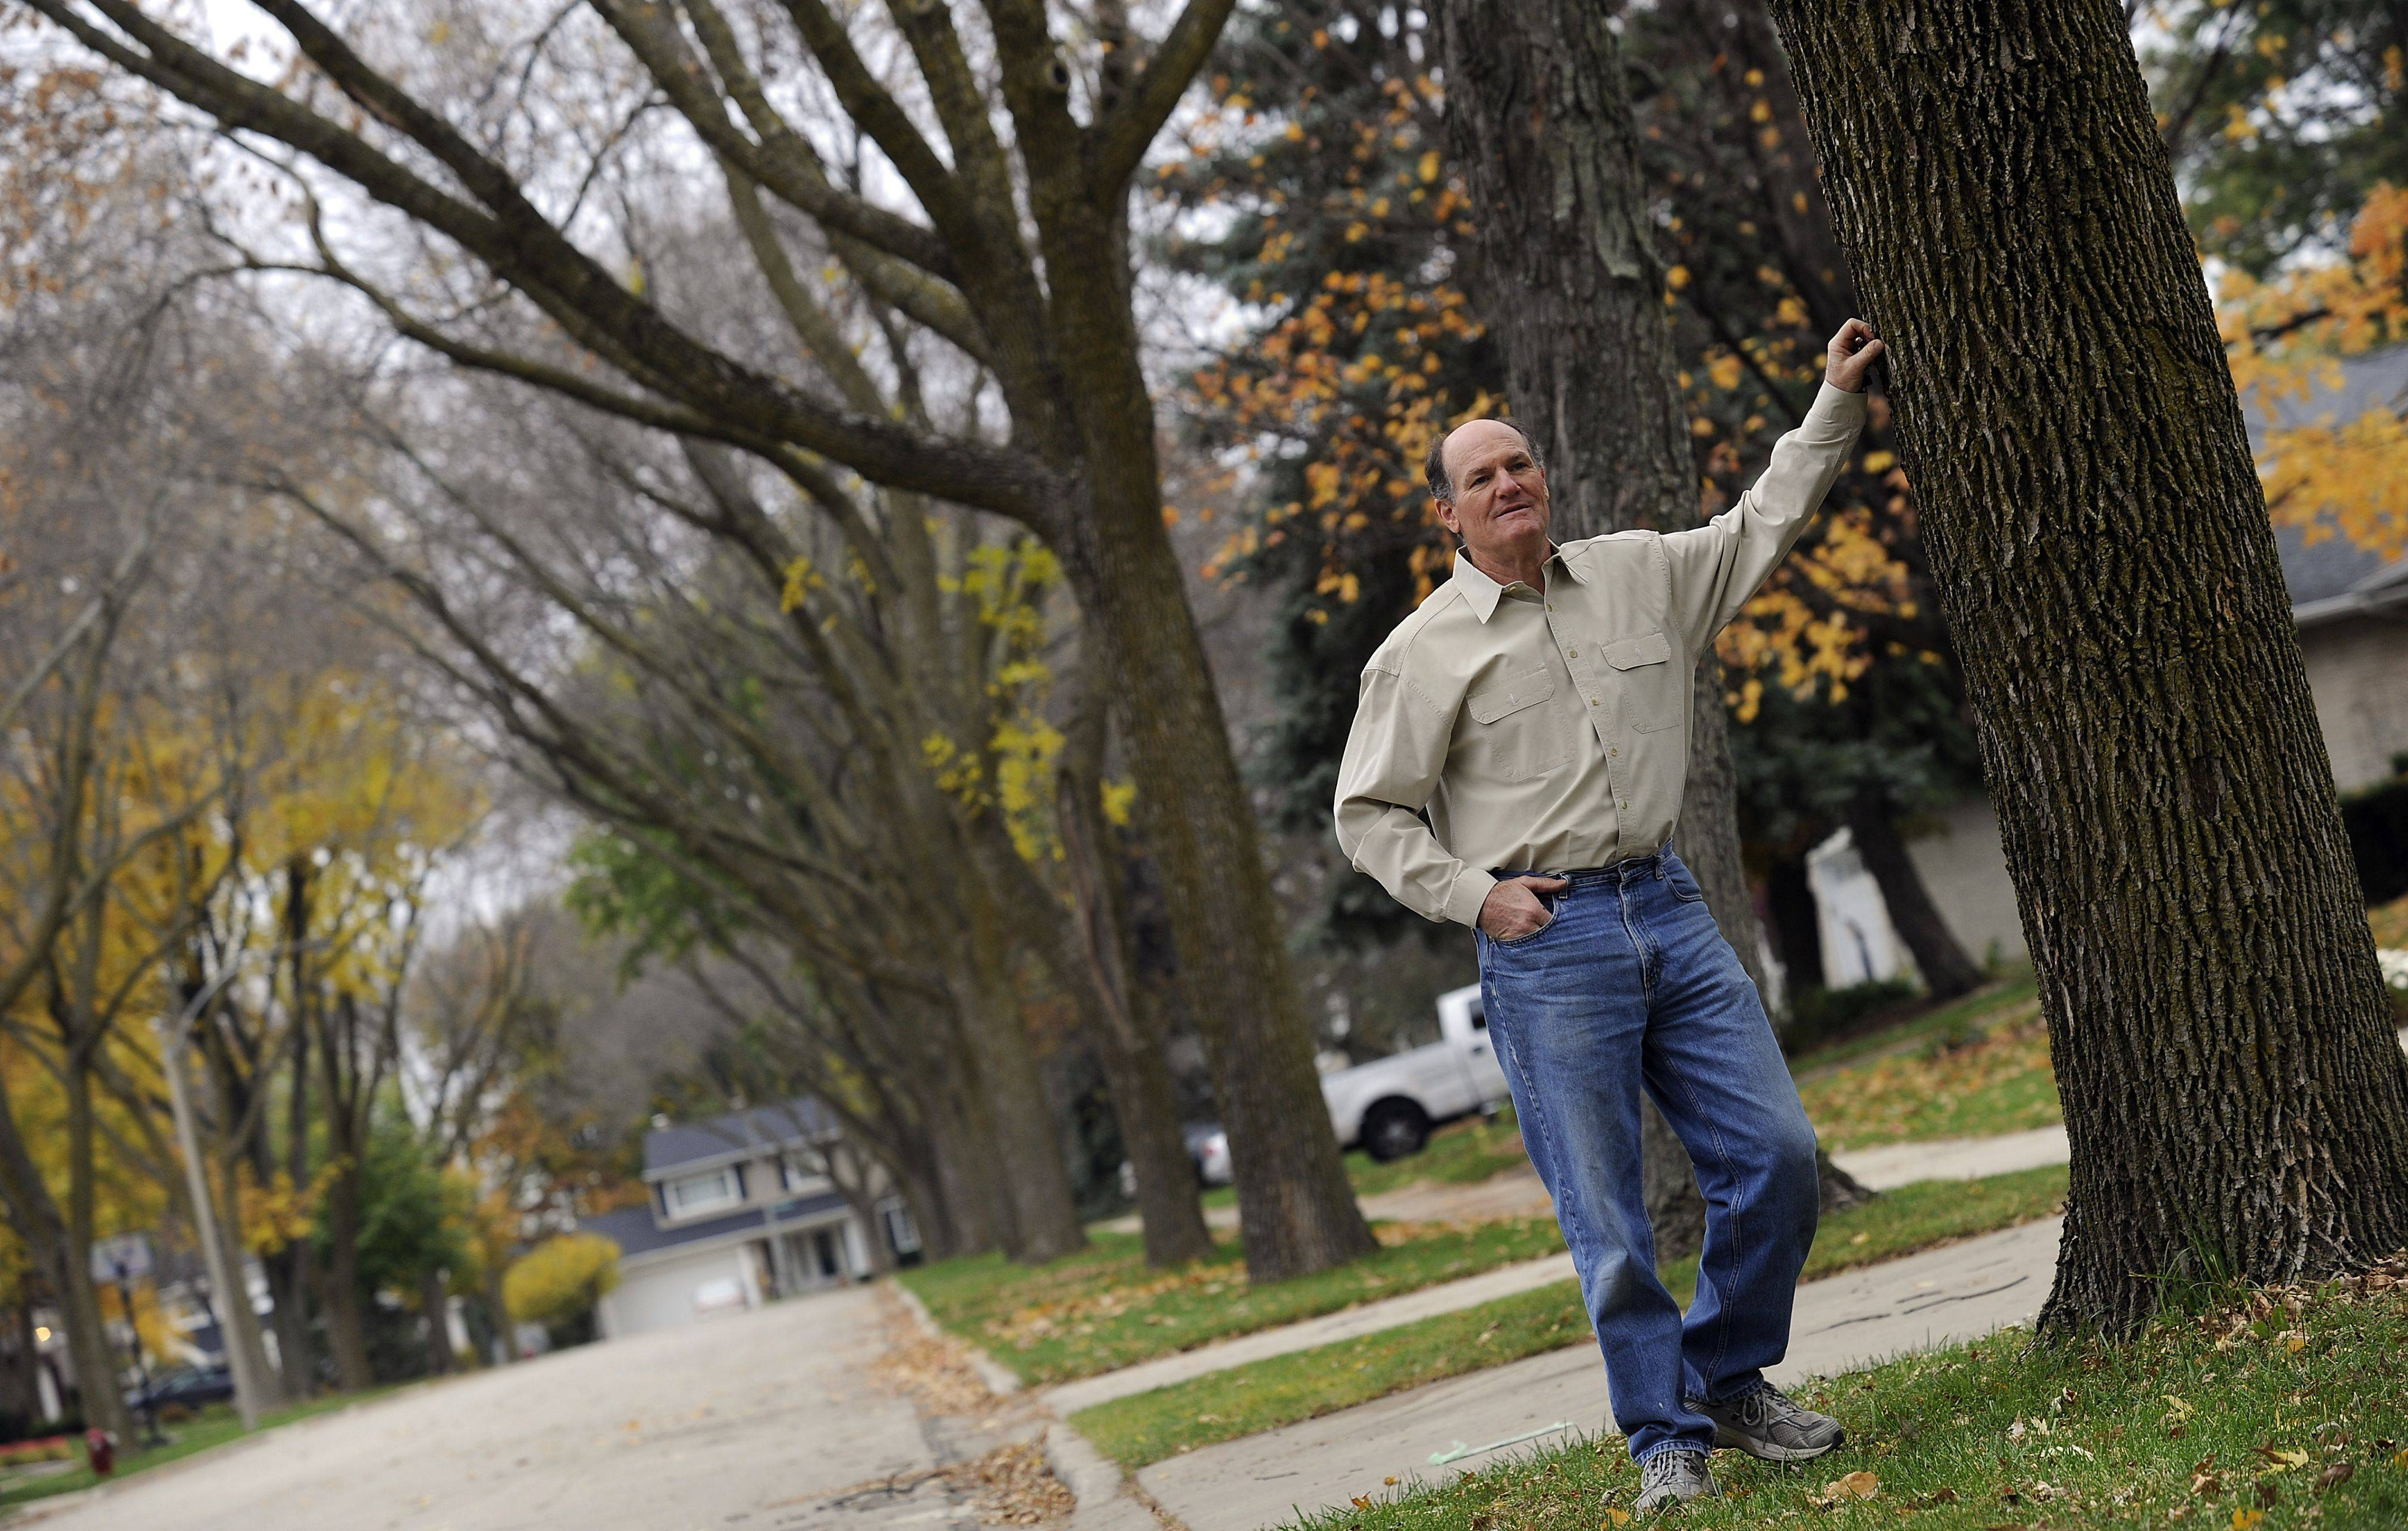 On the warpath: Neighborhood treats ash to prevent borer